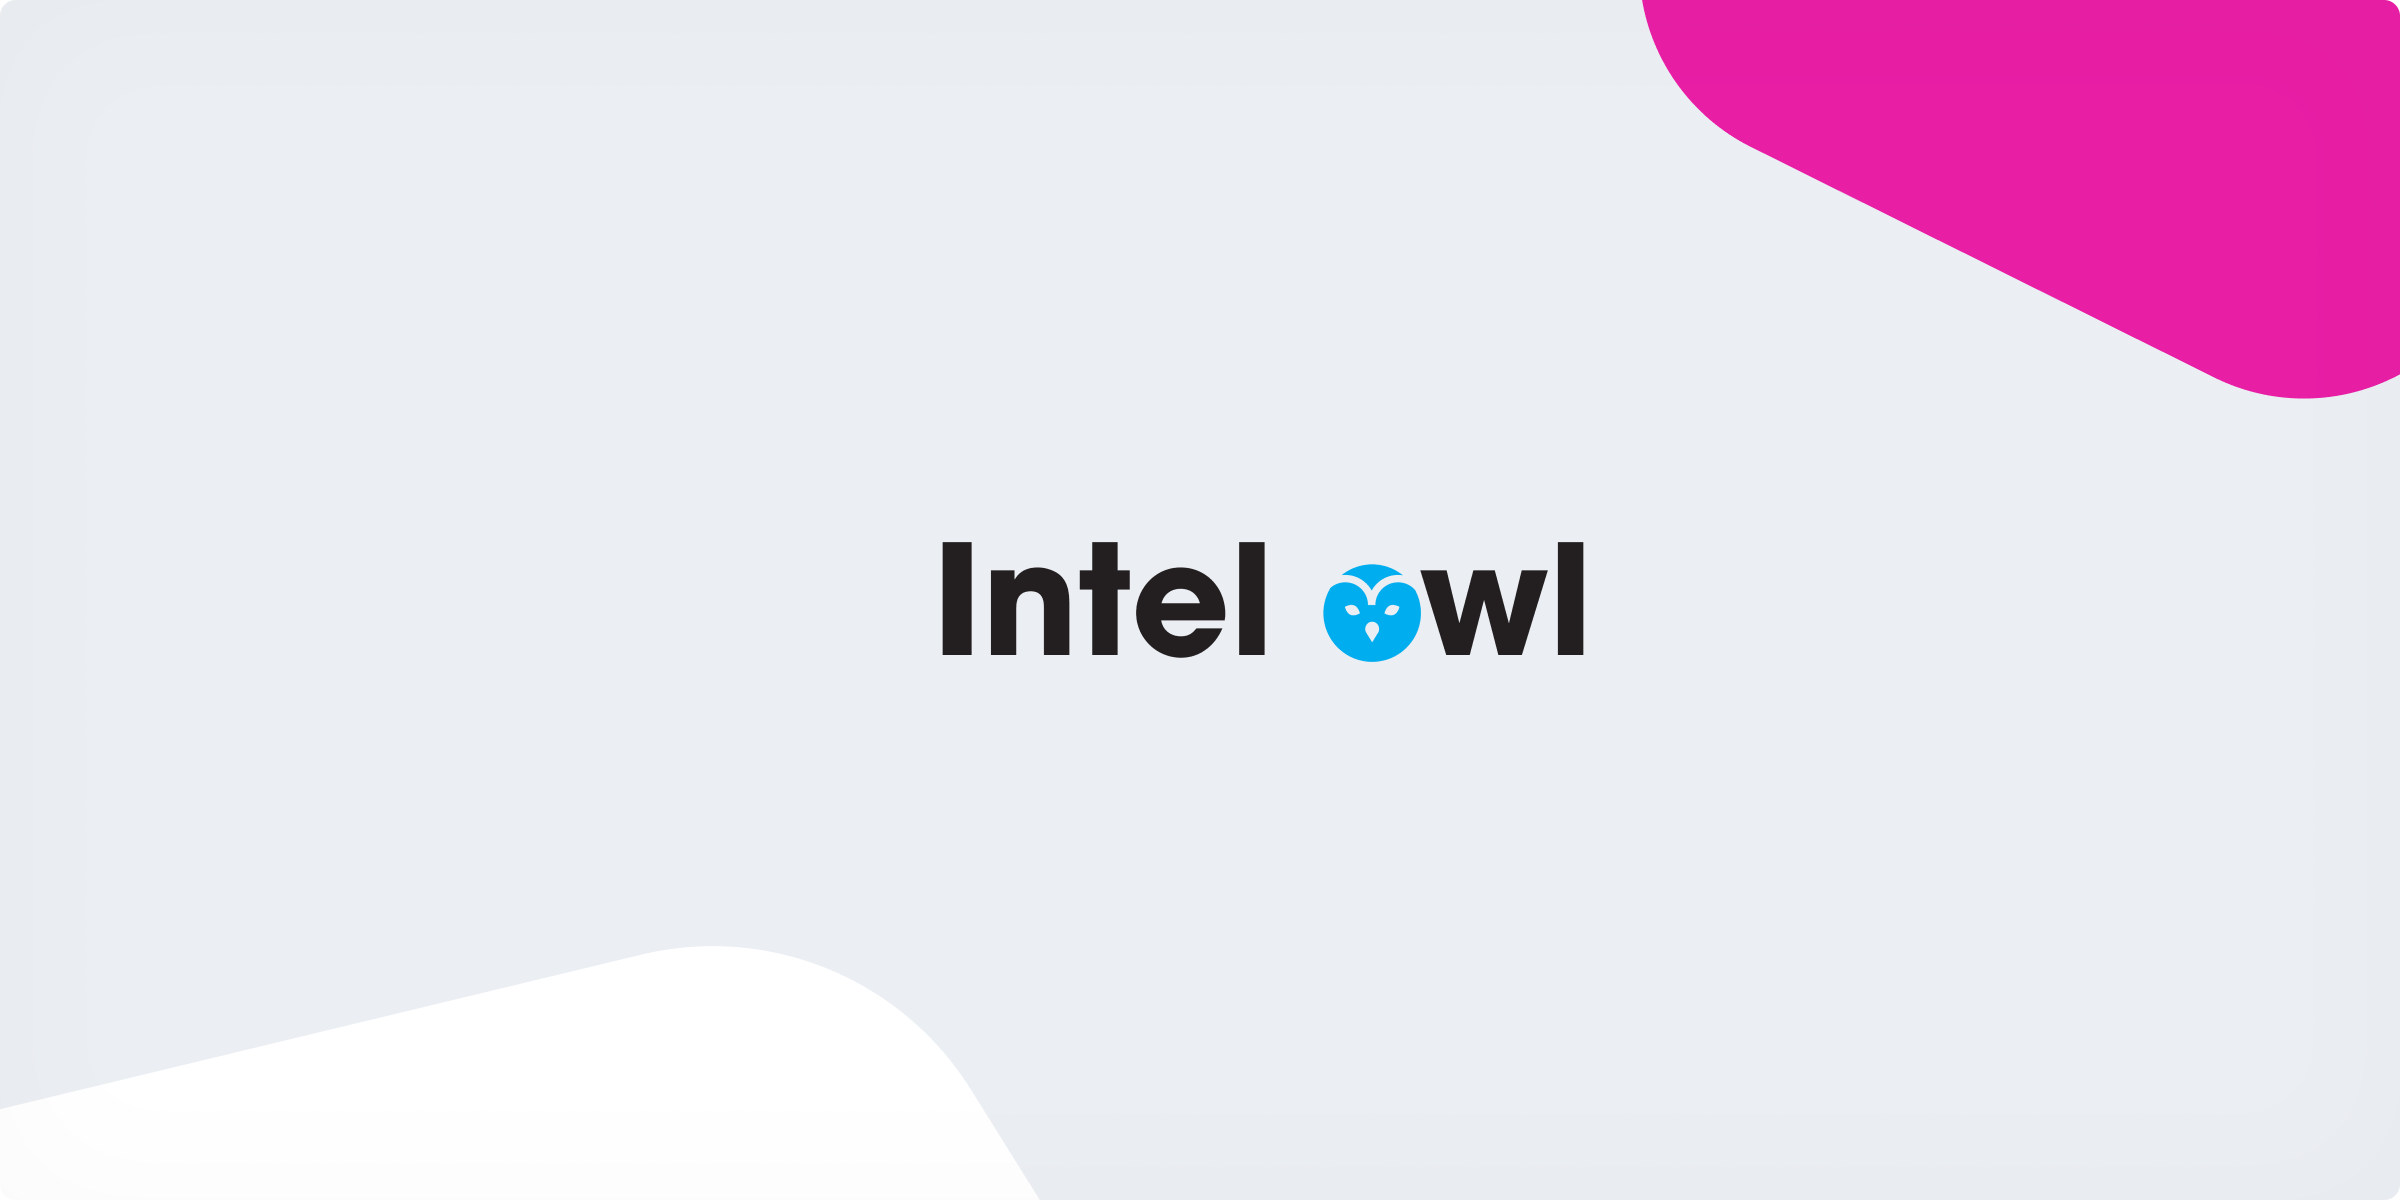 Announcing Our Sponsorship of Intel Owl